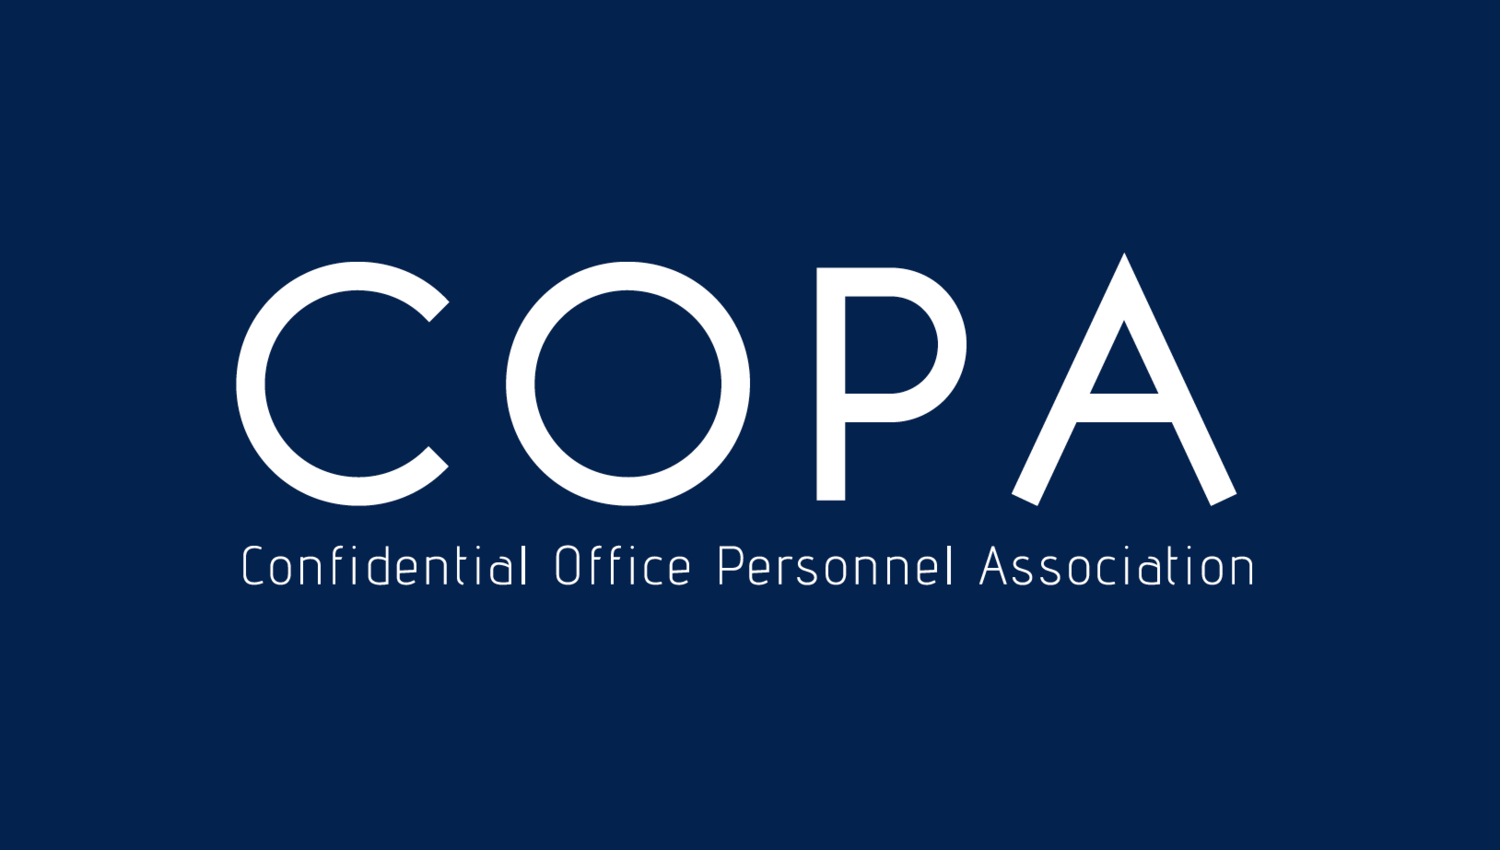 Confidential Office Personnel Association